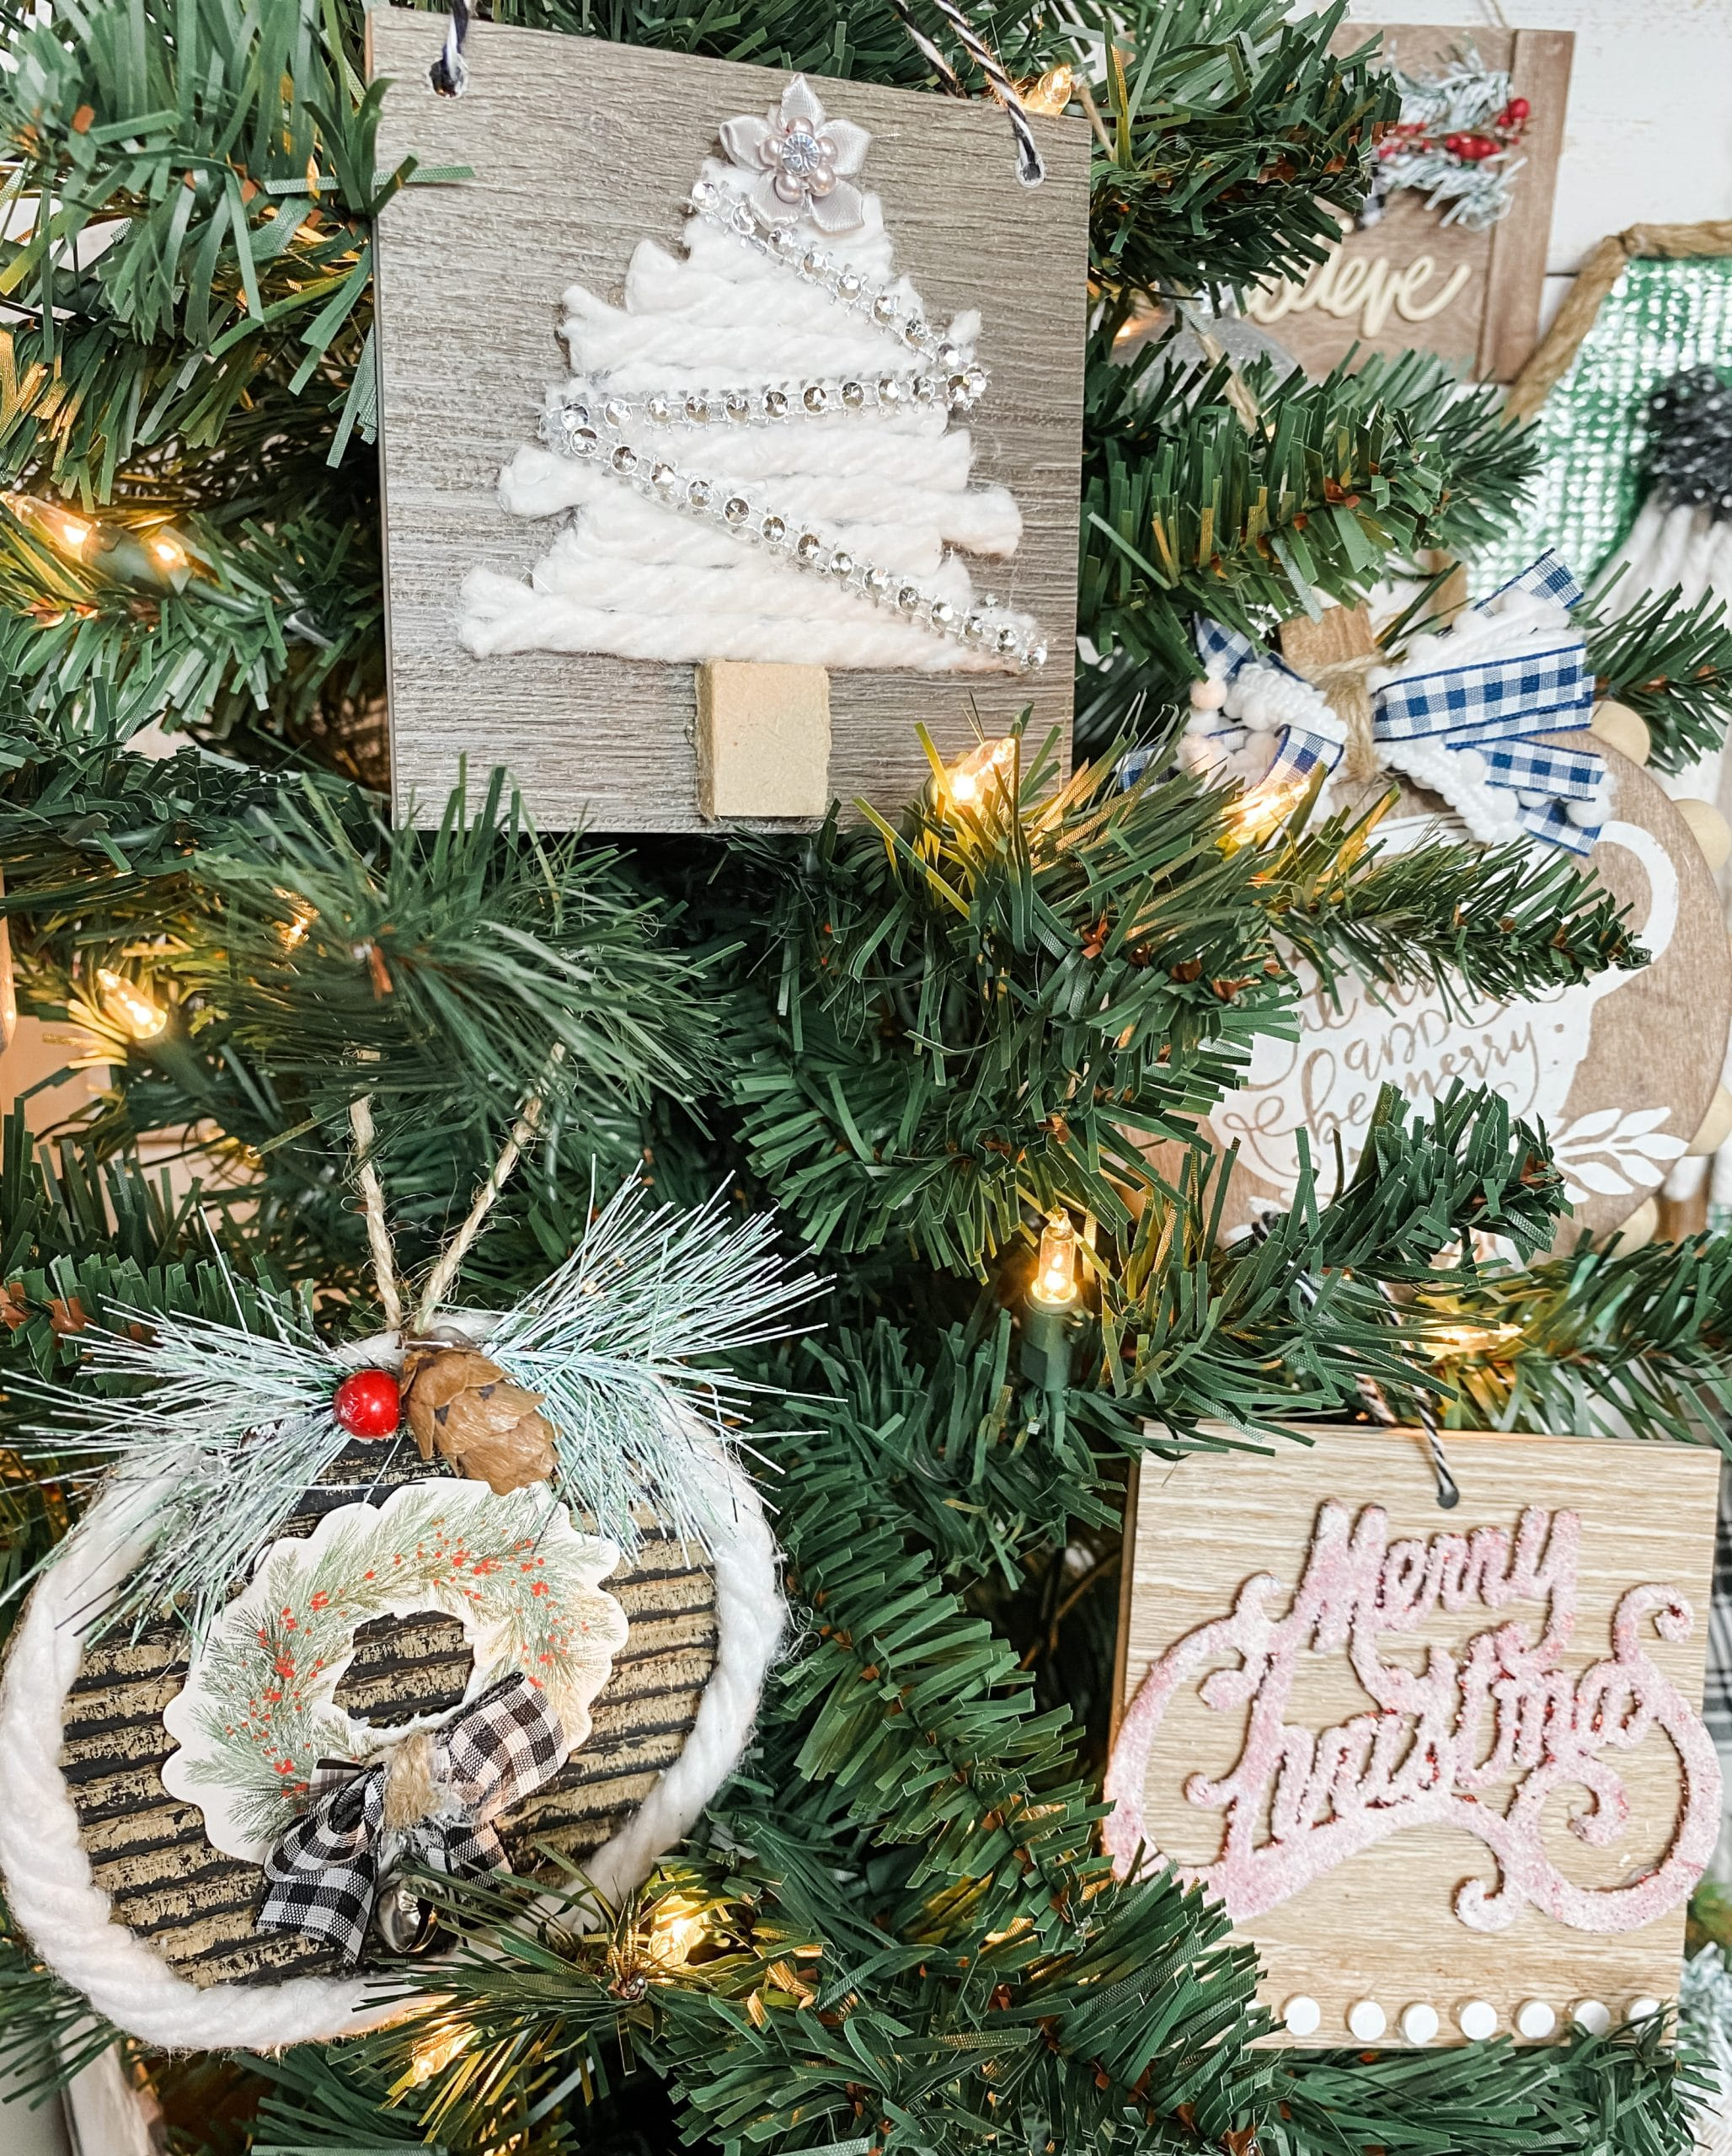 Home Depot Floor Sample DIY Christmas Ornaments